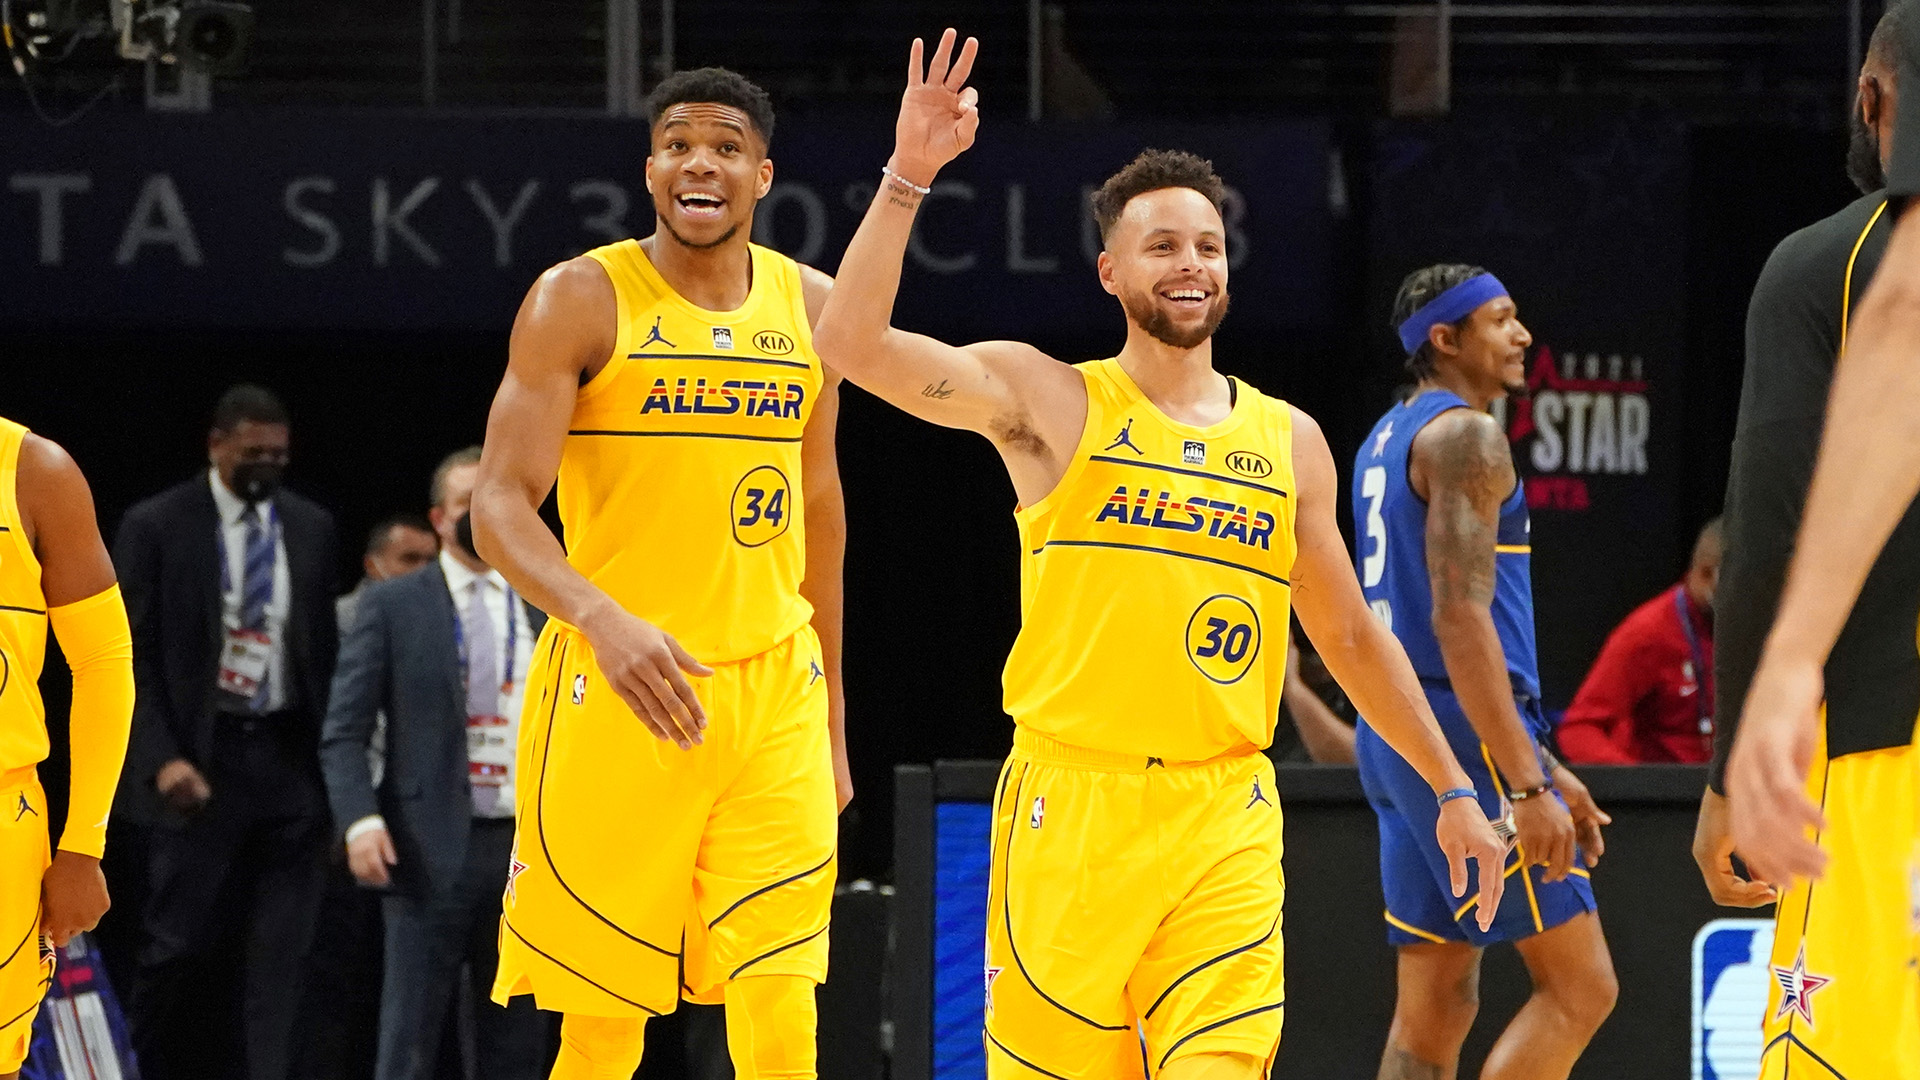 10 takeaways from the 2021 NBA All-Star Game